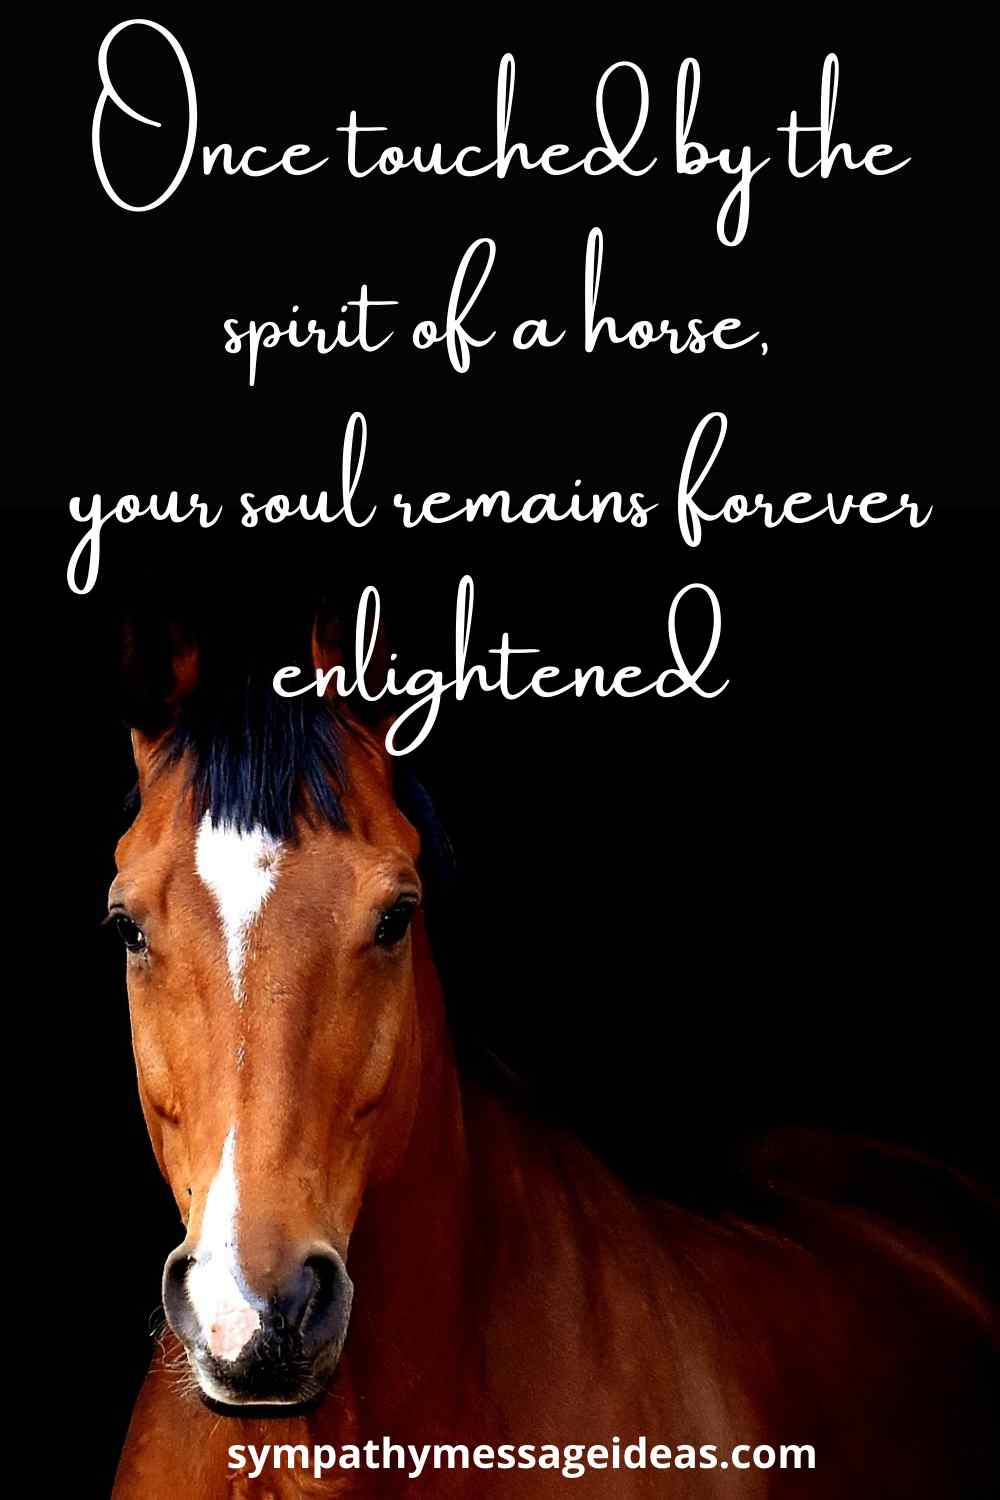 touched by a horse quote